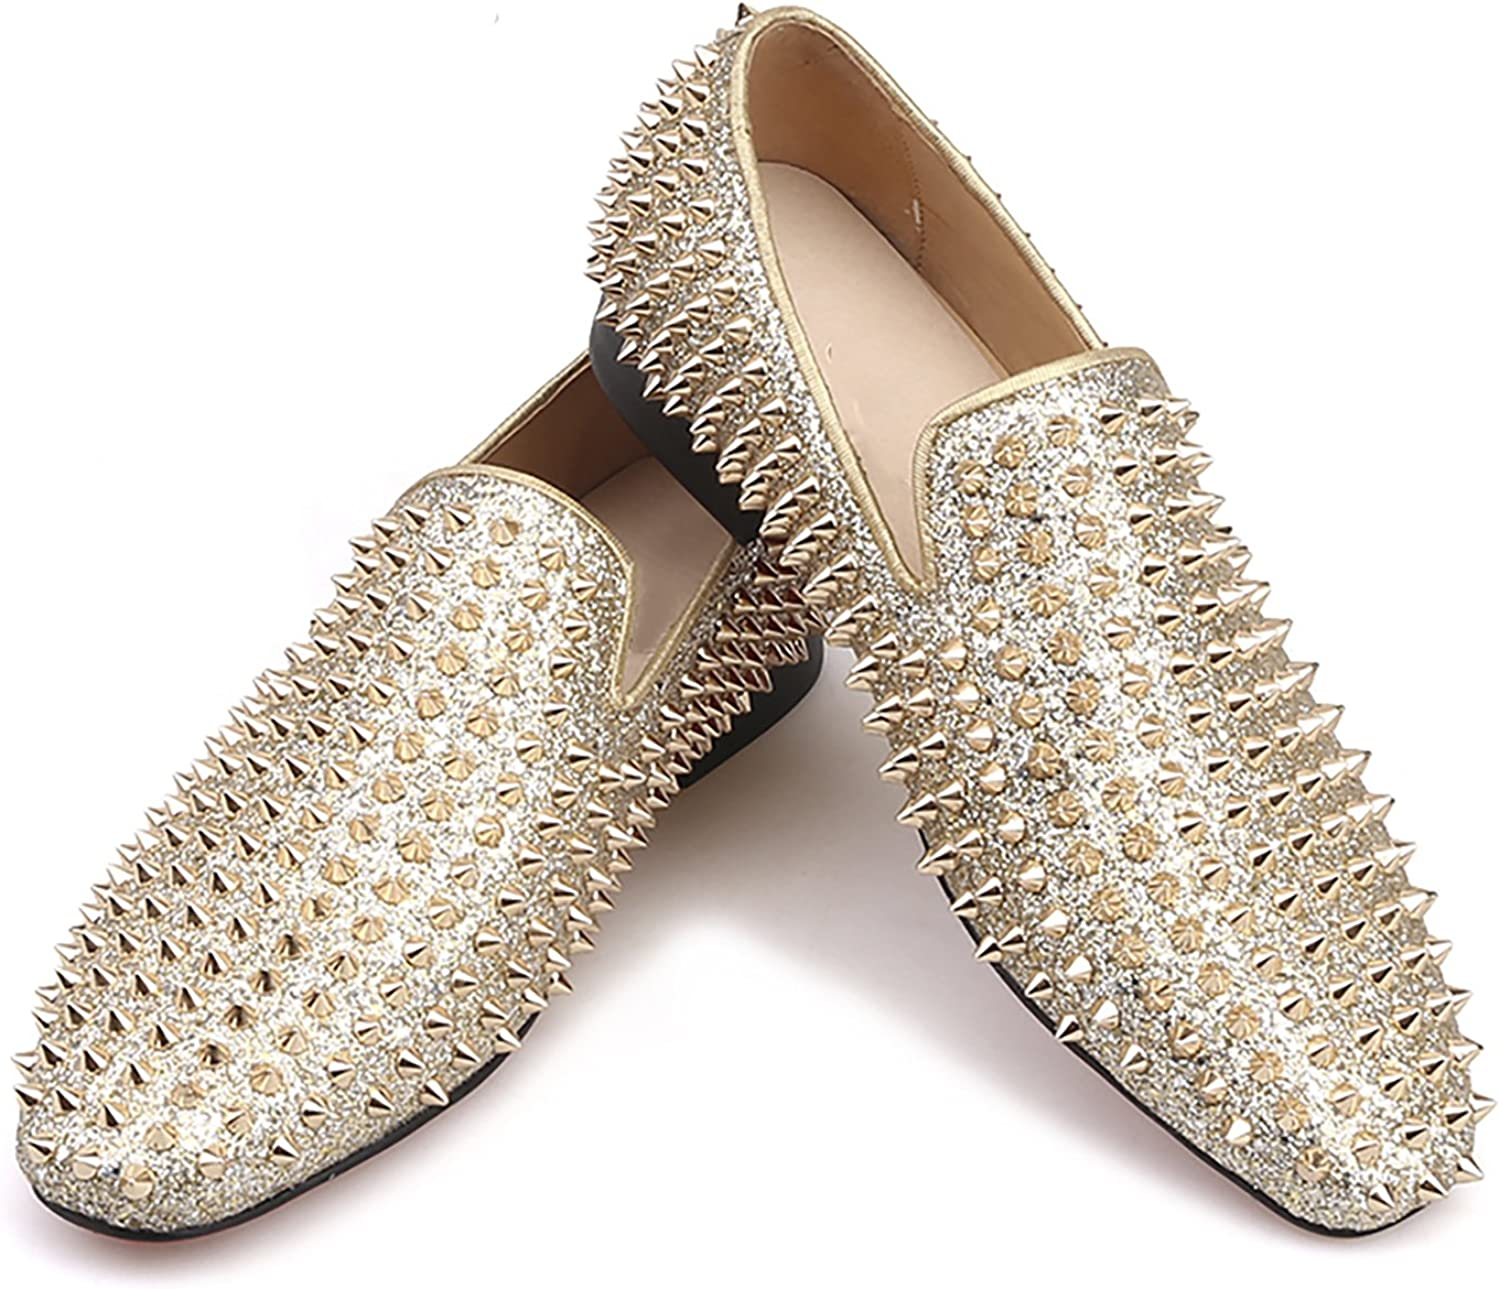 HIHANN Men Special Campaign Gold Spikes Leather Shoes Dress Loafers Prom Overseas parallel import regular item Smo